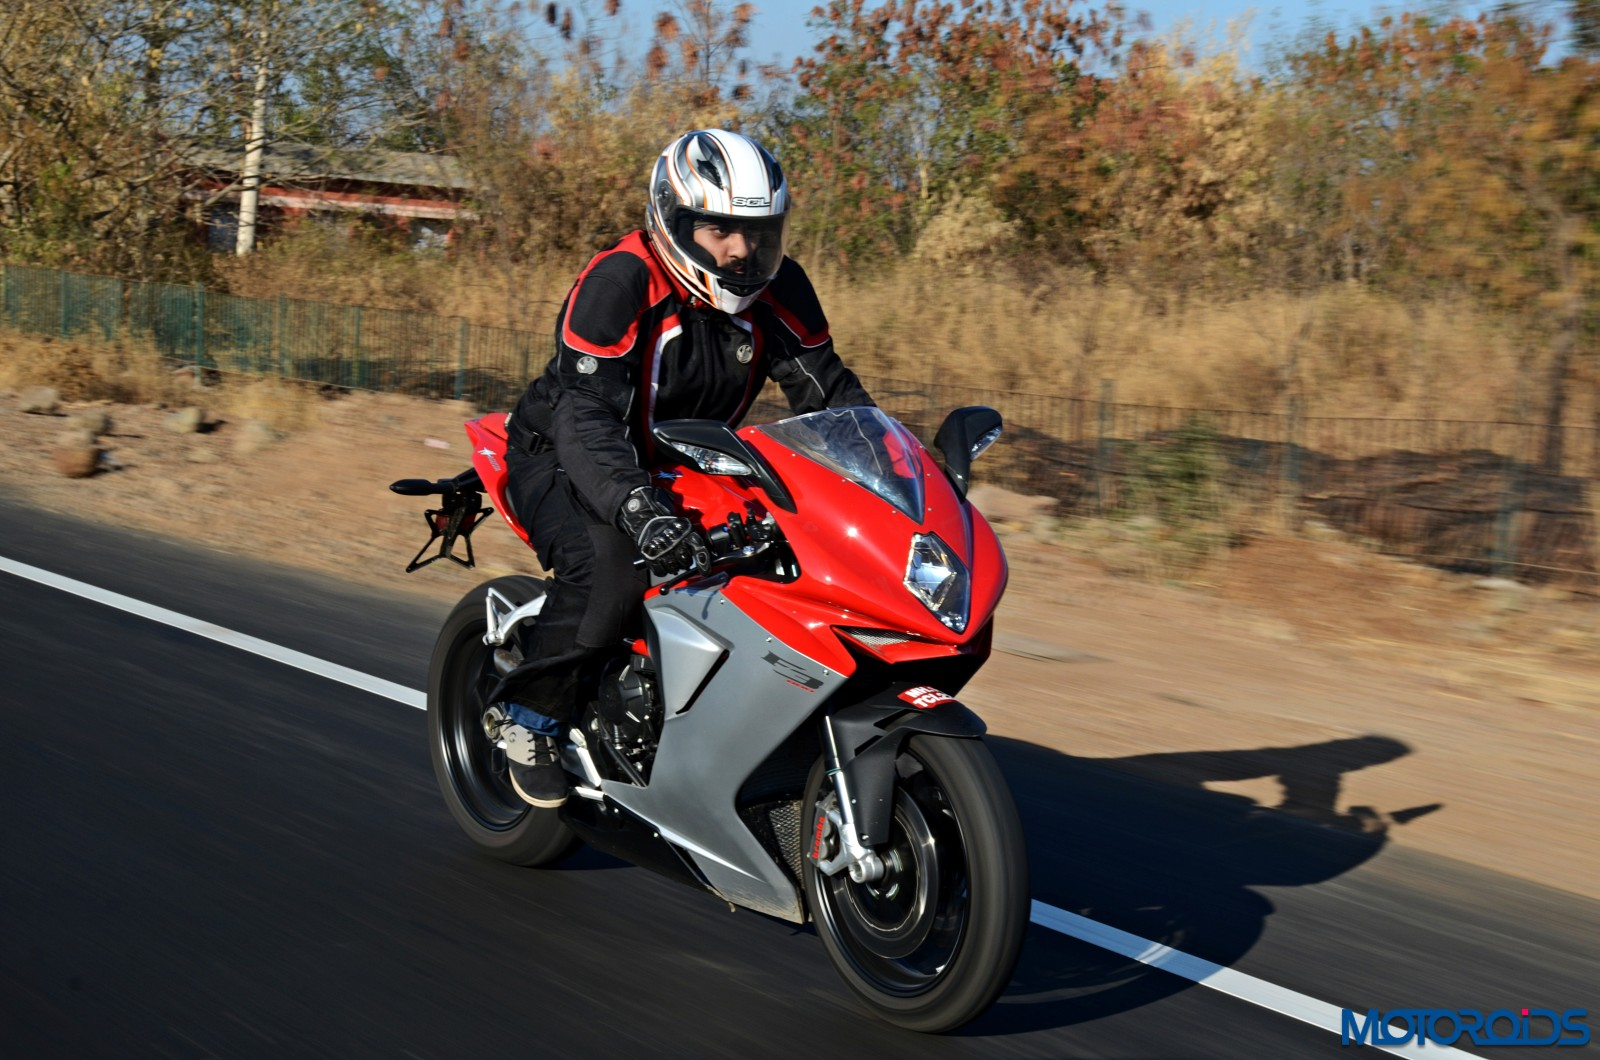 MV-Agusta-F3-800-Review-Action-Shots-20